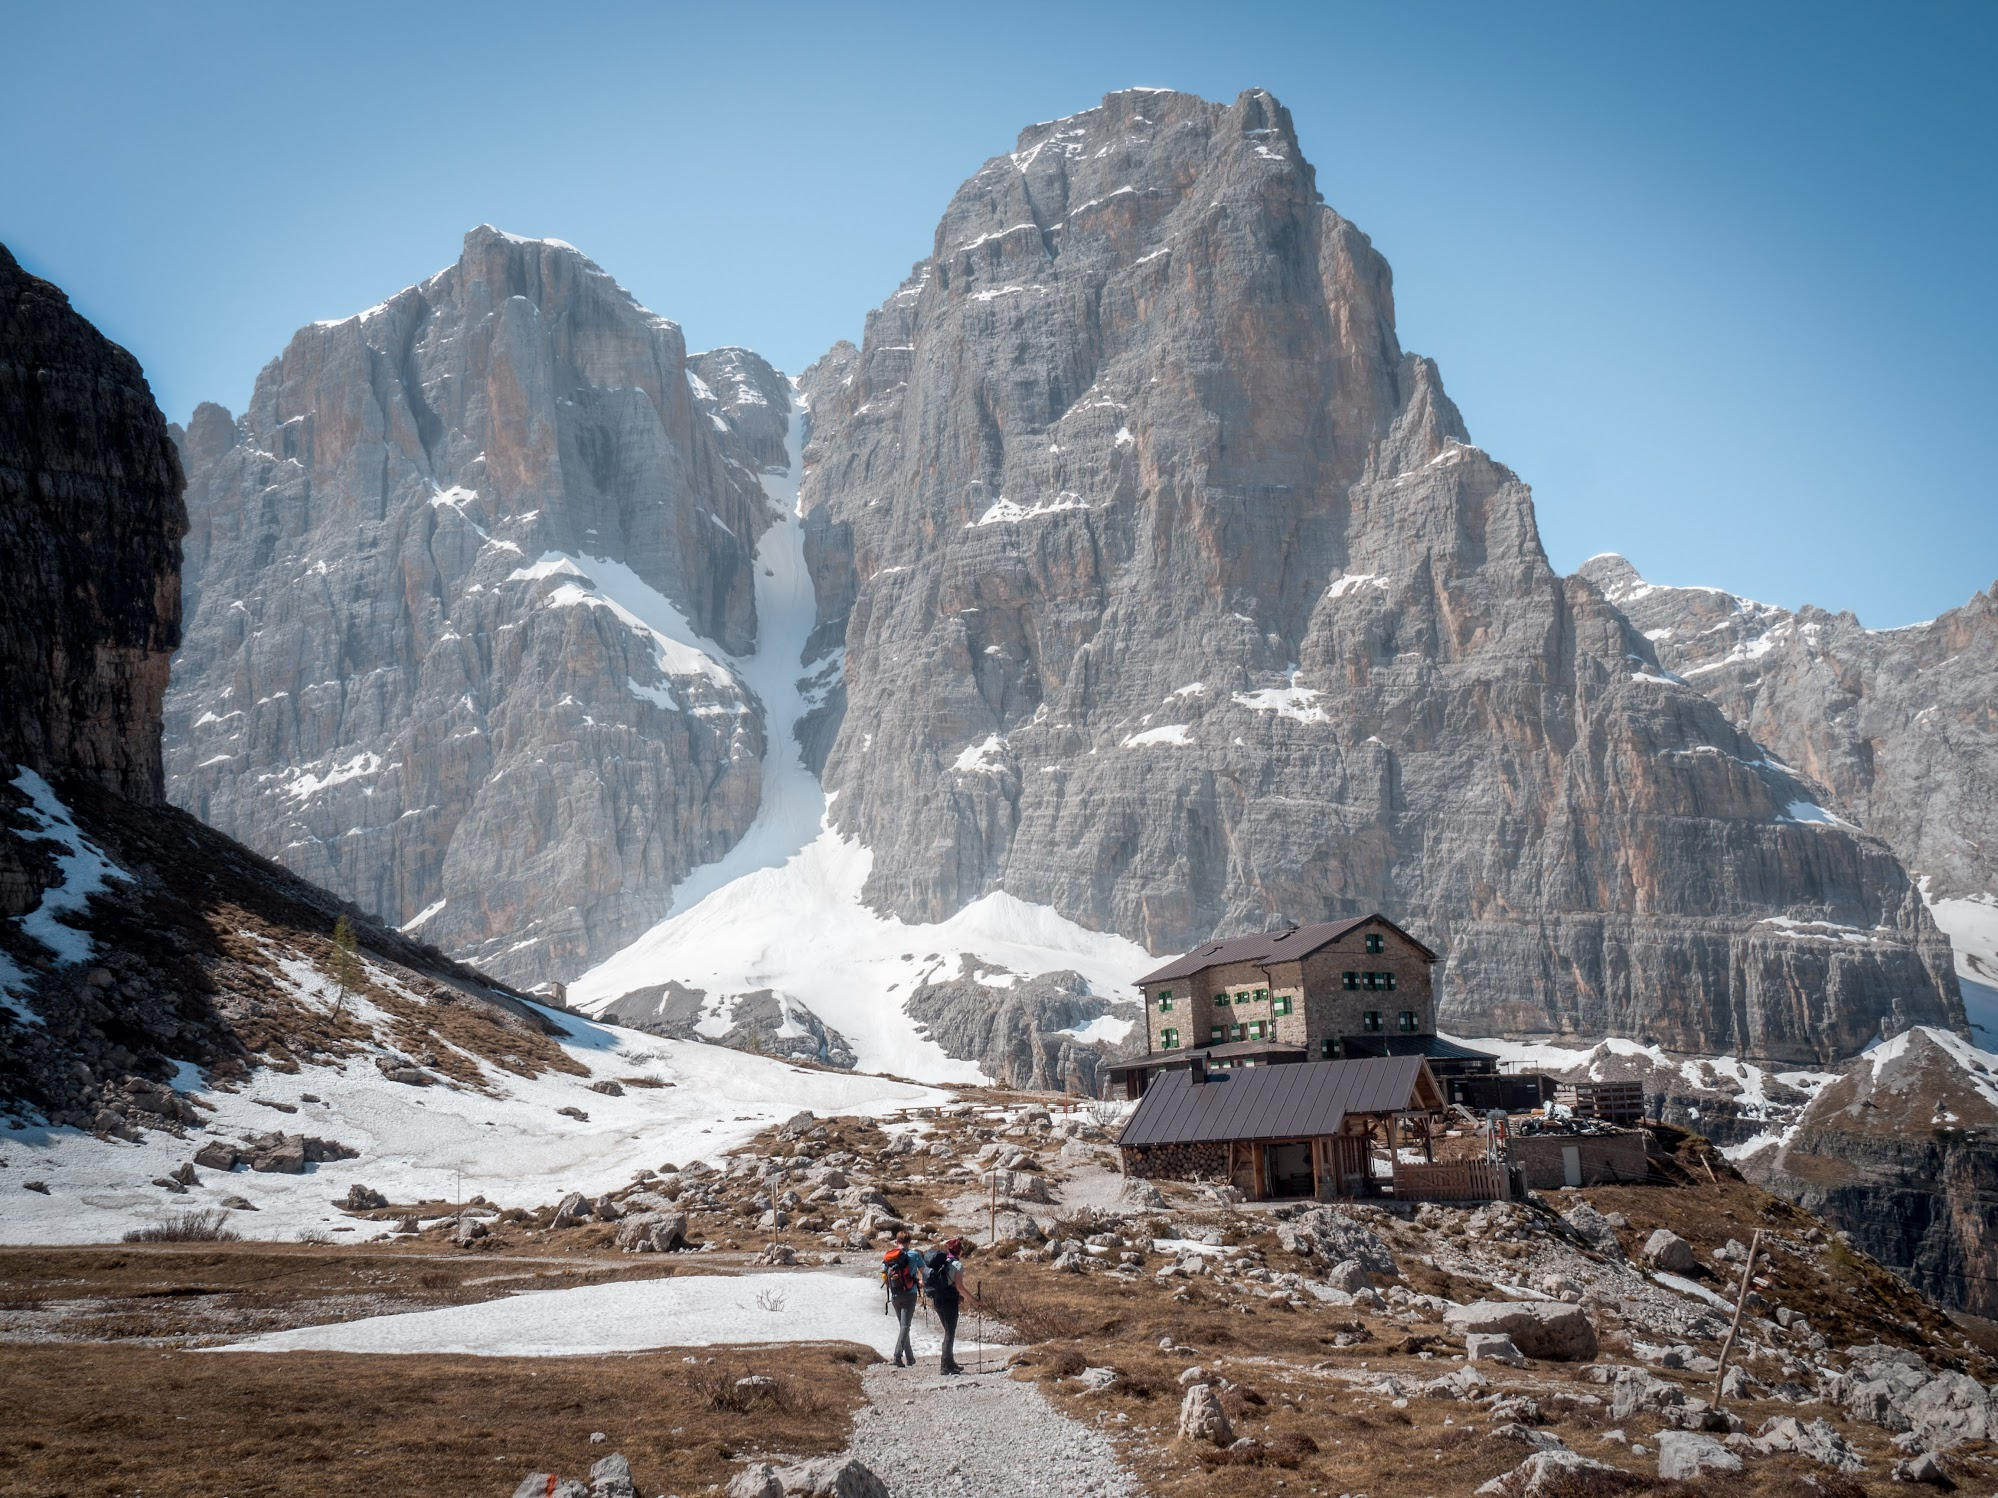 Rifugio Brentei in Dolomiti Brenta. It's 3 hr hike from the trailhead near Madonna di Campiglio.